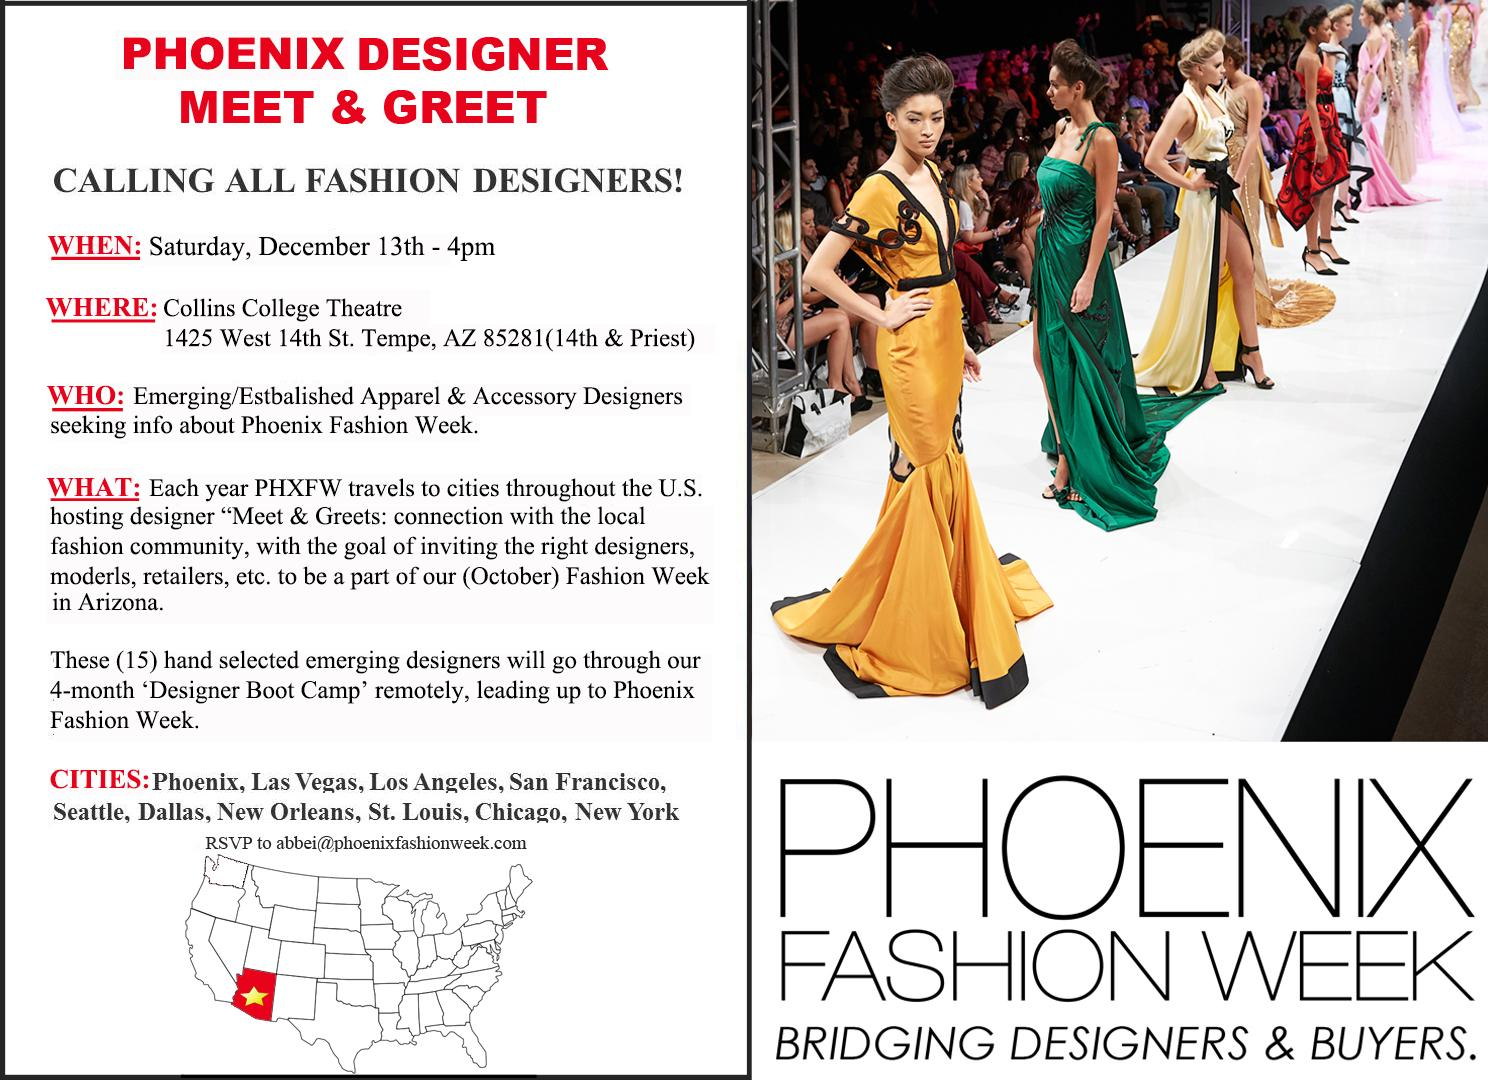 Phxfashionweek On Twitter Phoenix Designer Search Meet Greet Dec 13th 4pm Bring Your Fashion A Game Designersearch Http T Co Gahdupffdq